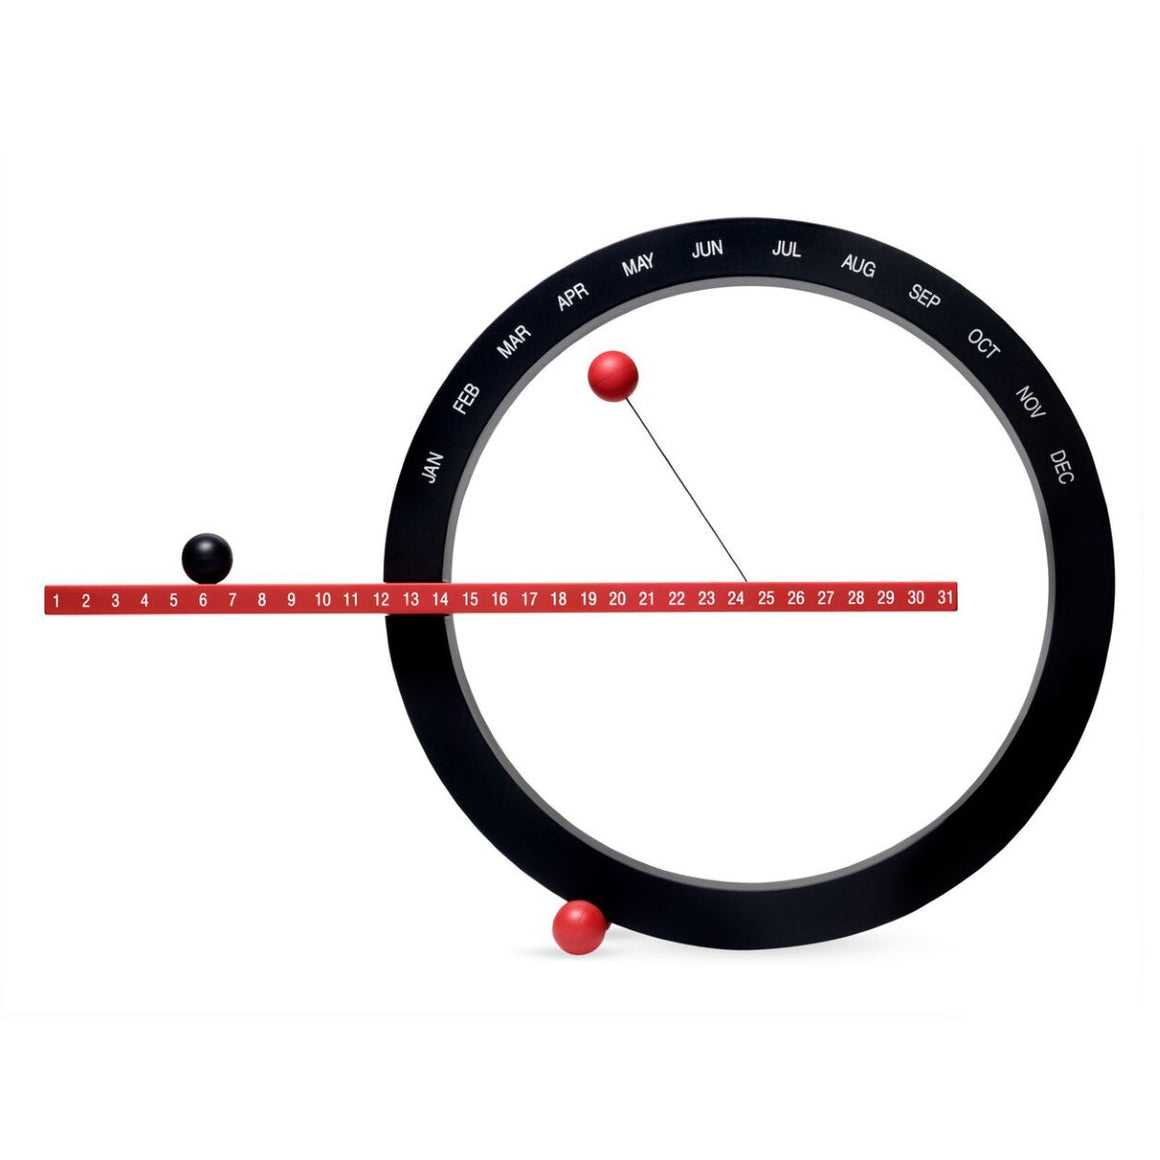 A 'Perpetual Calendar' in red and black. A Black Circle is marked with the months. A Red Rod bisects the circle and is marked with numbers (for each day of the month). Magnetic balls in red and black indicate the date and month.